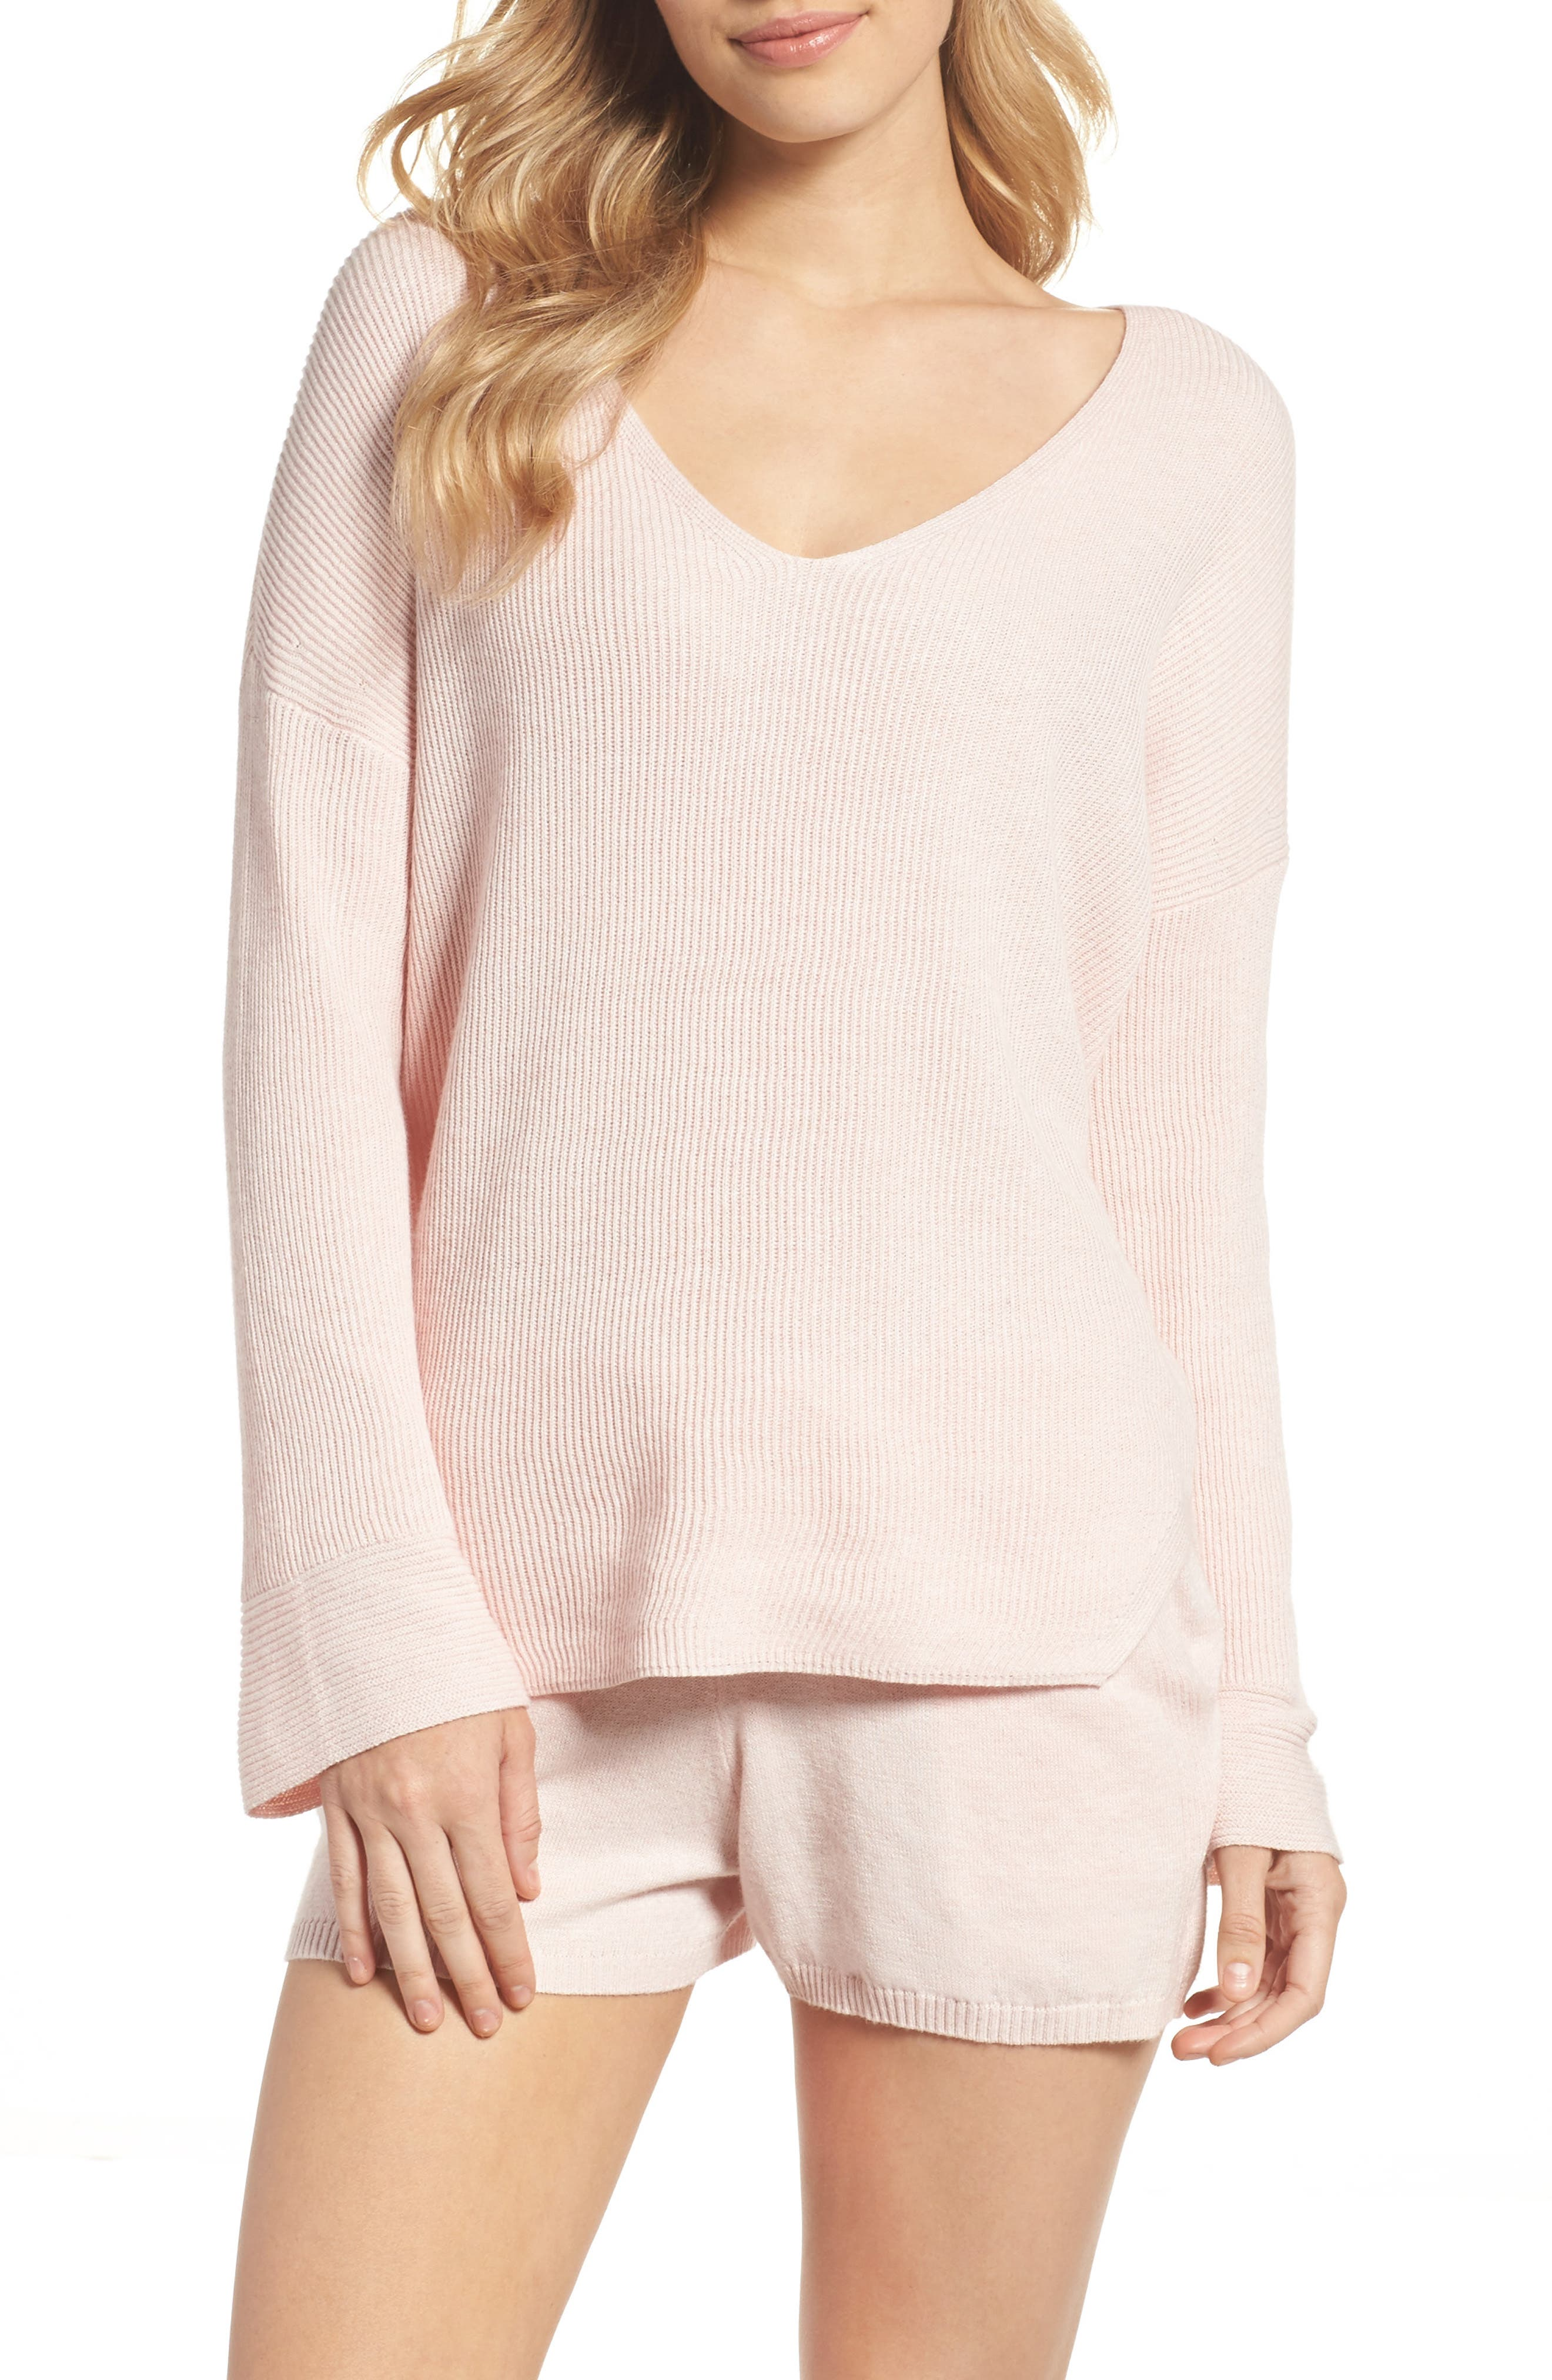 Veronica Lounge Pullover,                             Alternate thumbnail 14, color,